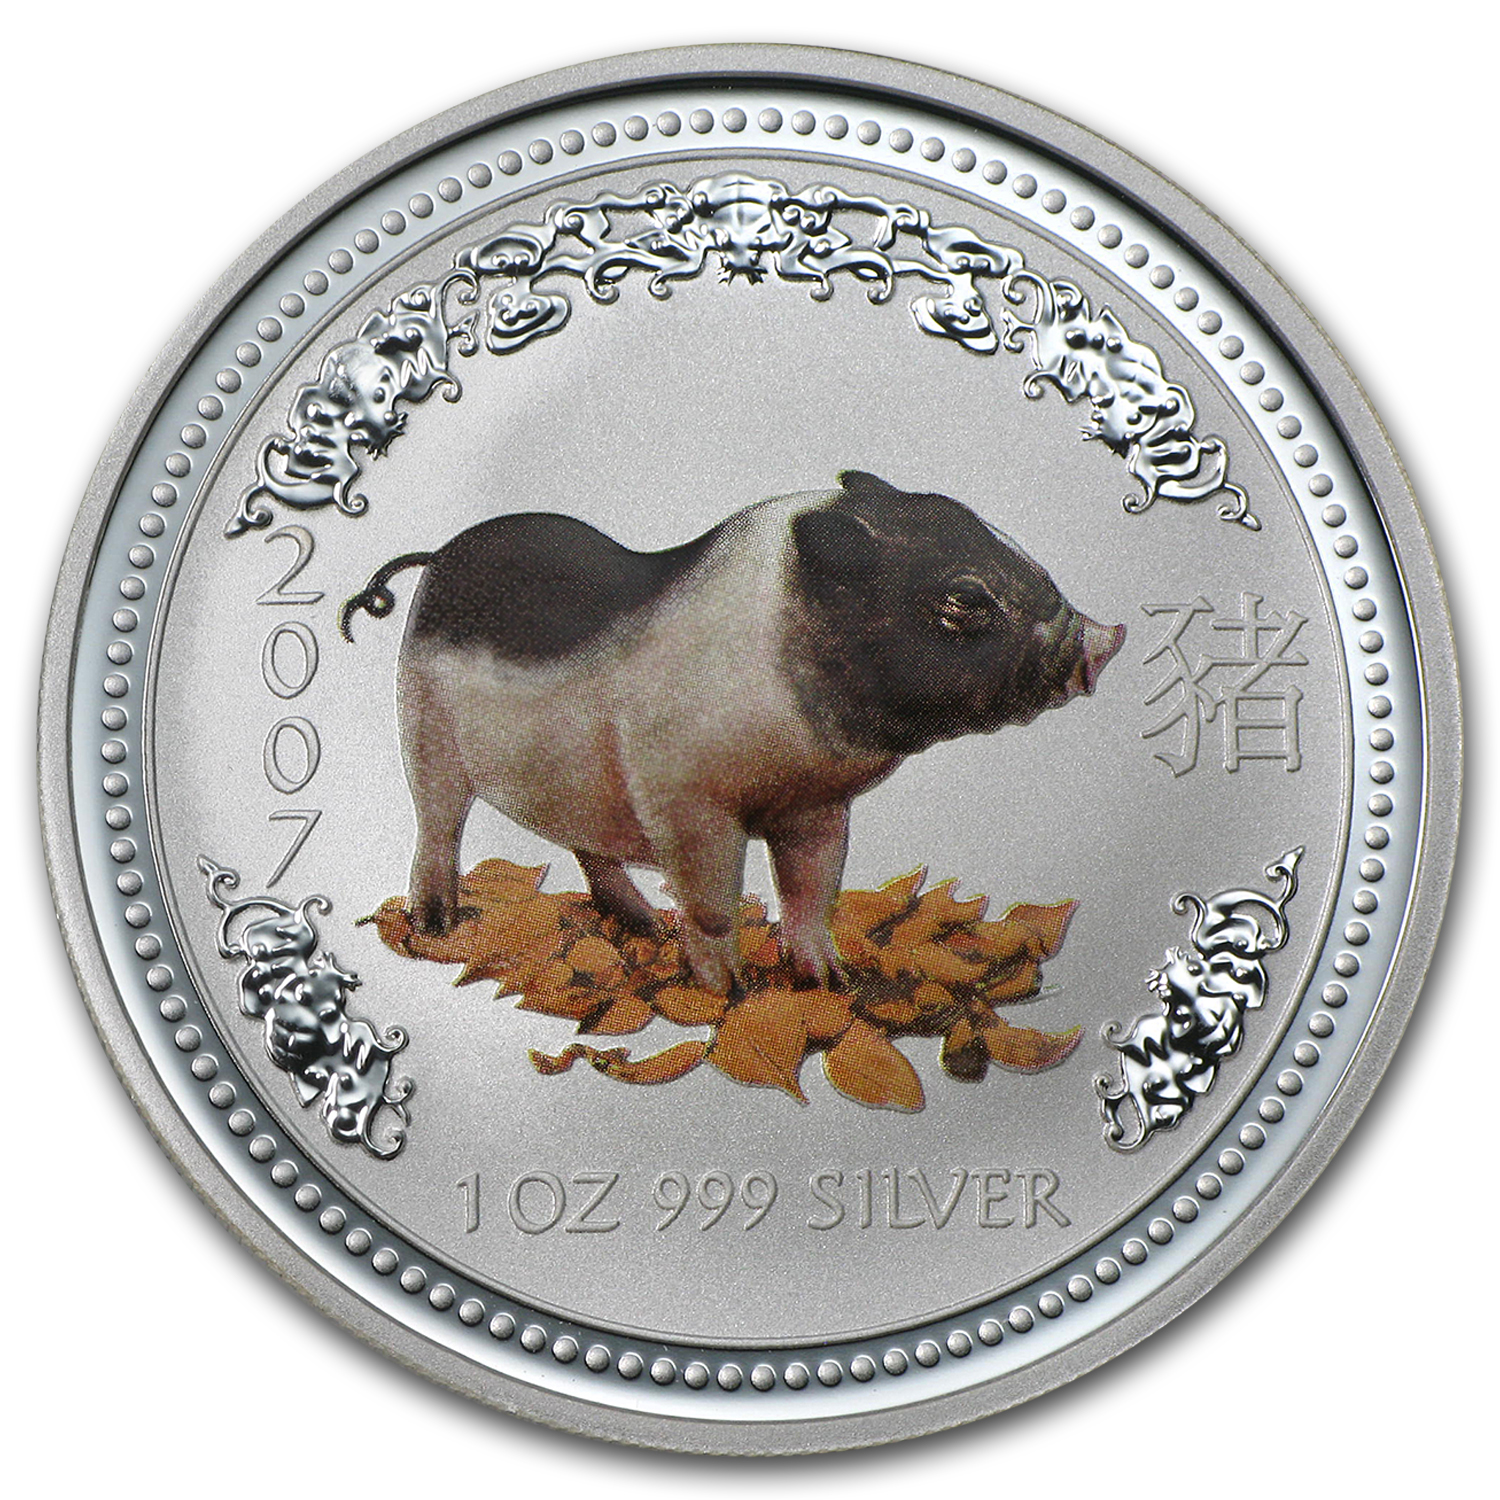 2007 1 oz Silver Lunar Year of the Pig (Series I)(Colorized)